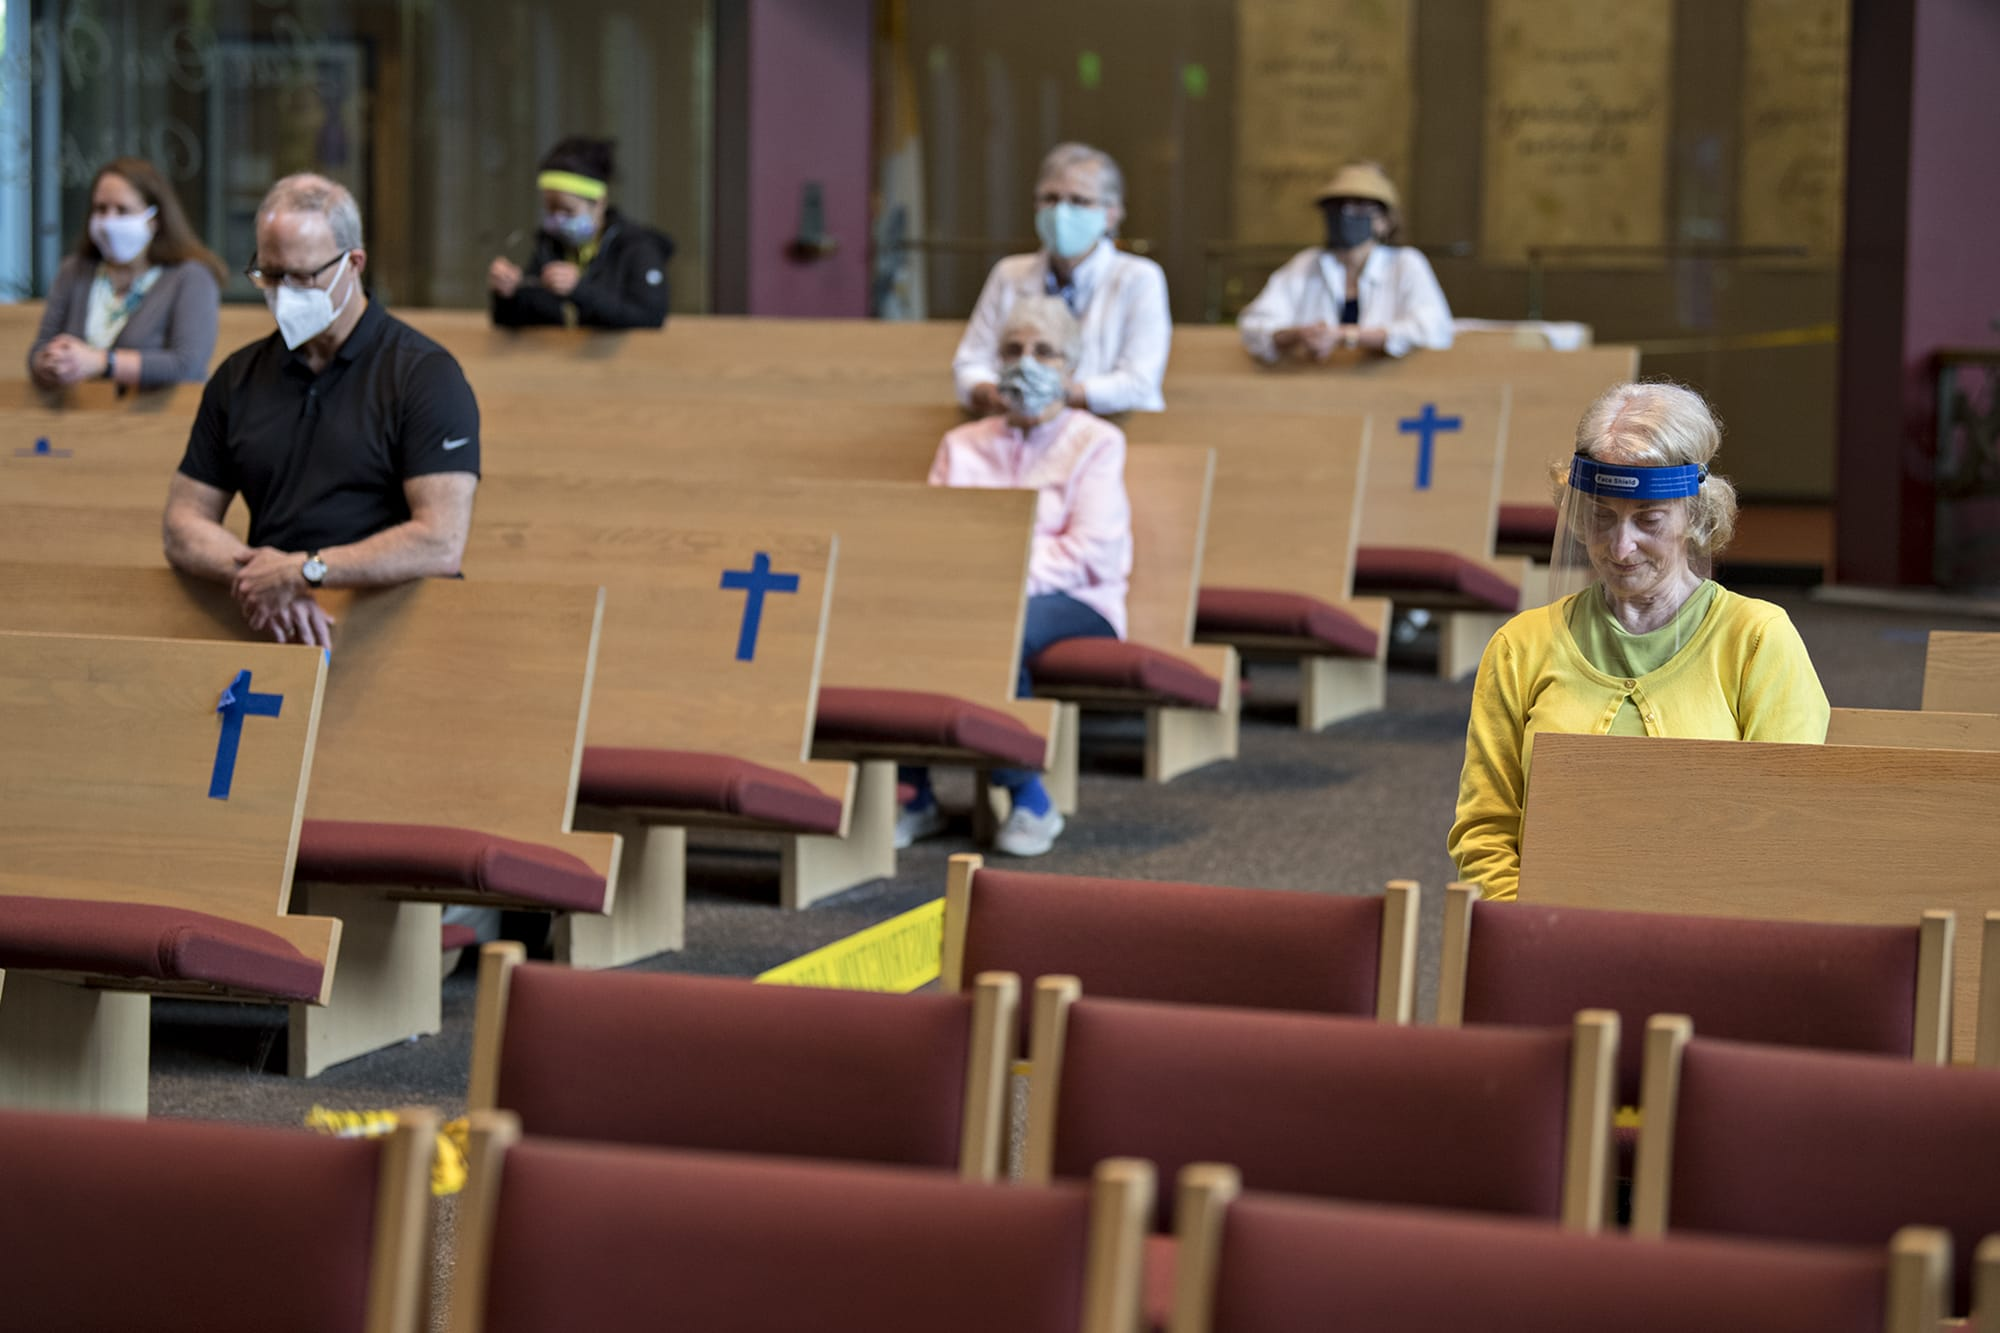 Connie Kessinger of St. Joseph Catholic Church, right, bows her head in prayer before the service on Thursday morning, June 18, 2020. As churches slowly reopen, the traditional Catholic Mass has shifted to adapt to COVID-19.